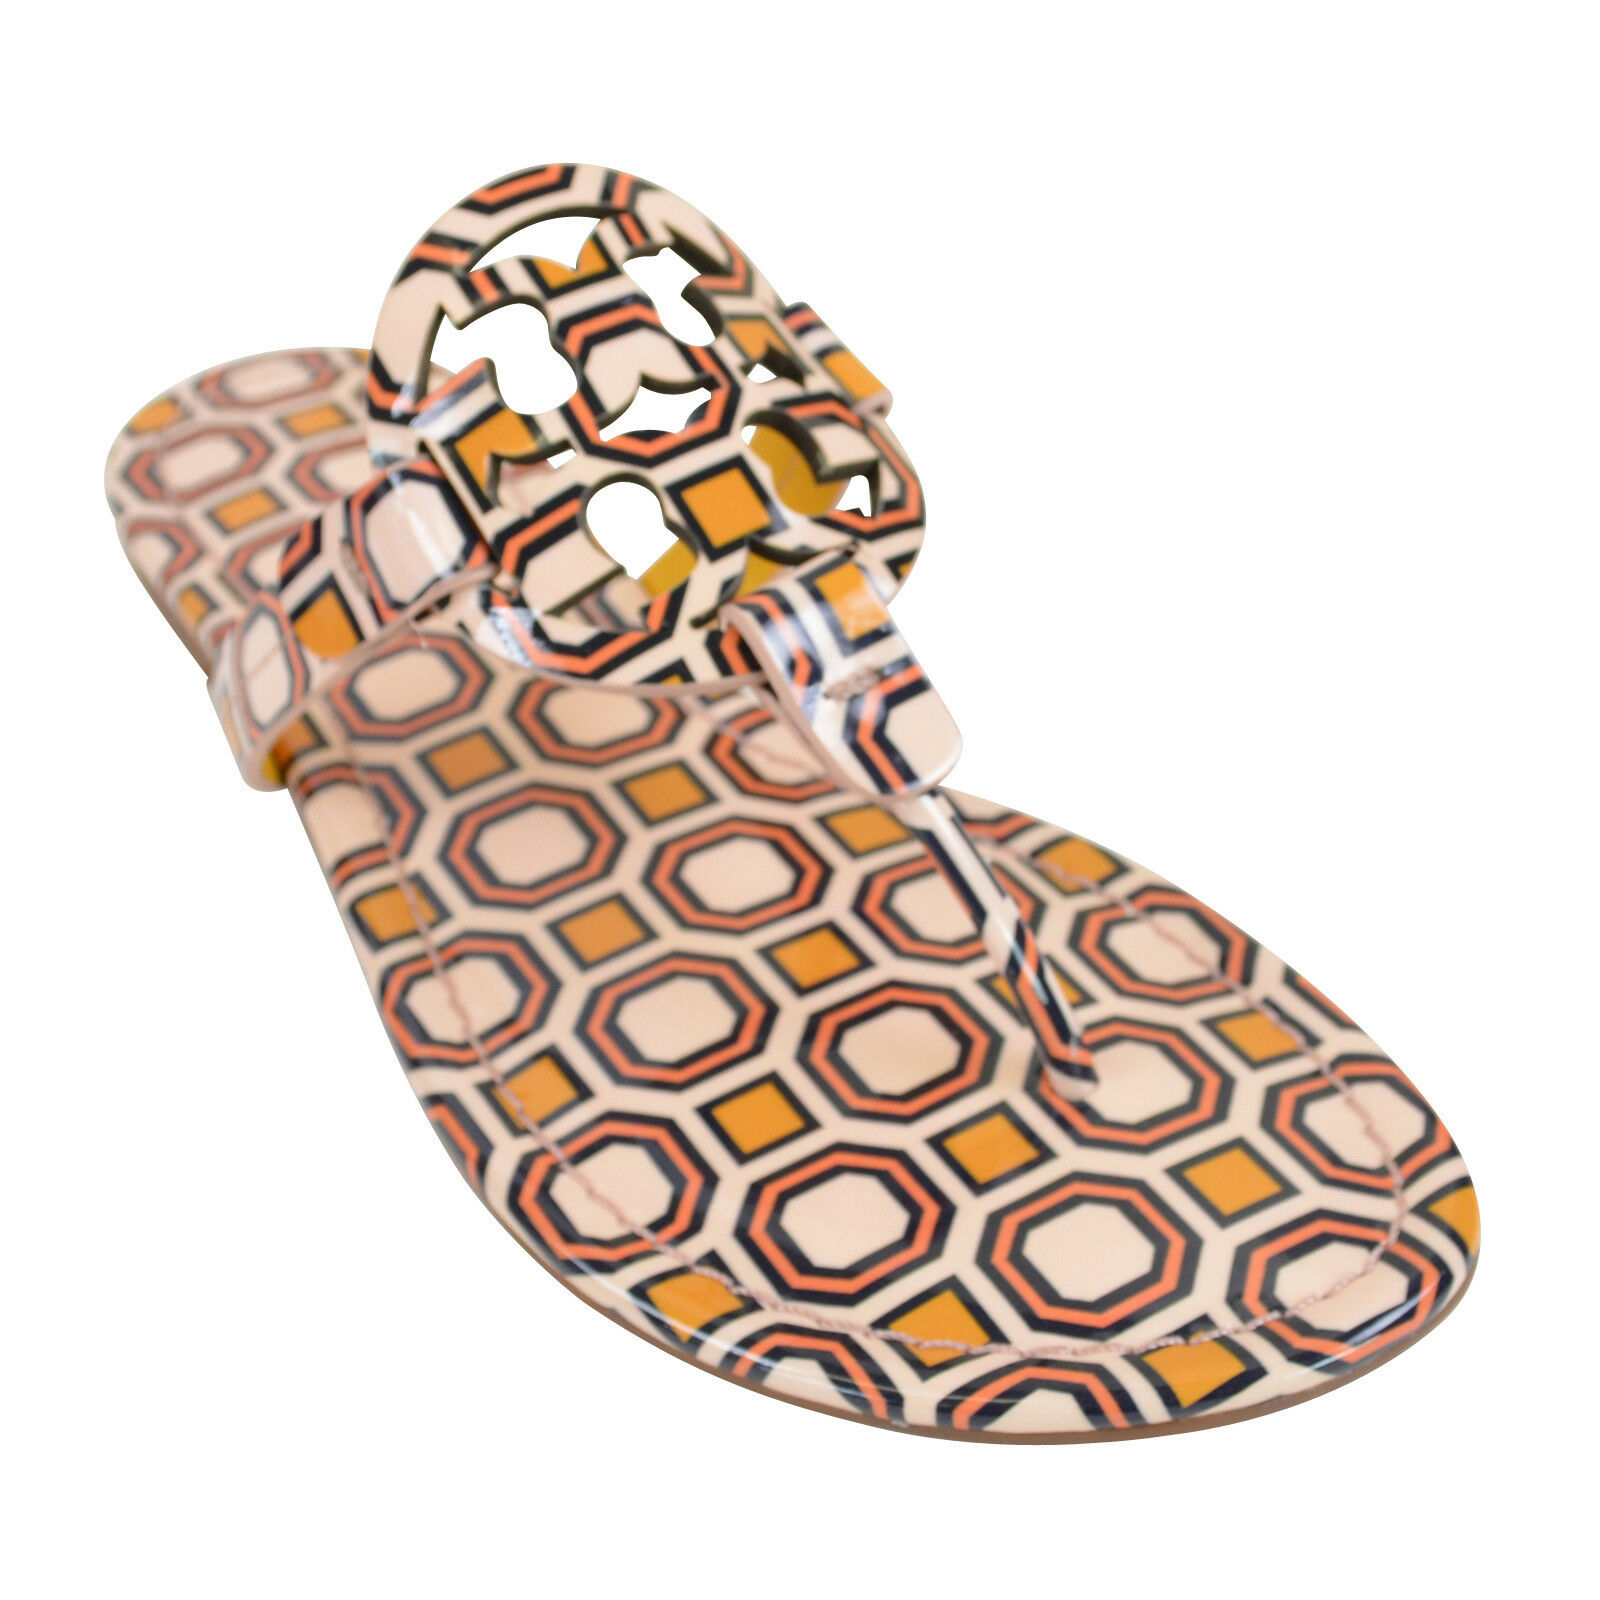 b93cf7ddfa9e Details about Tory Burch Women s Miller Leather Thong Sandals PRINTED  BALLET PINK OCTAGON